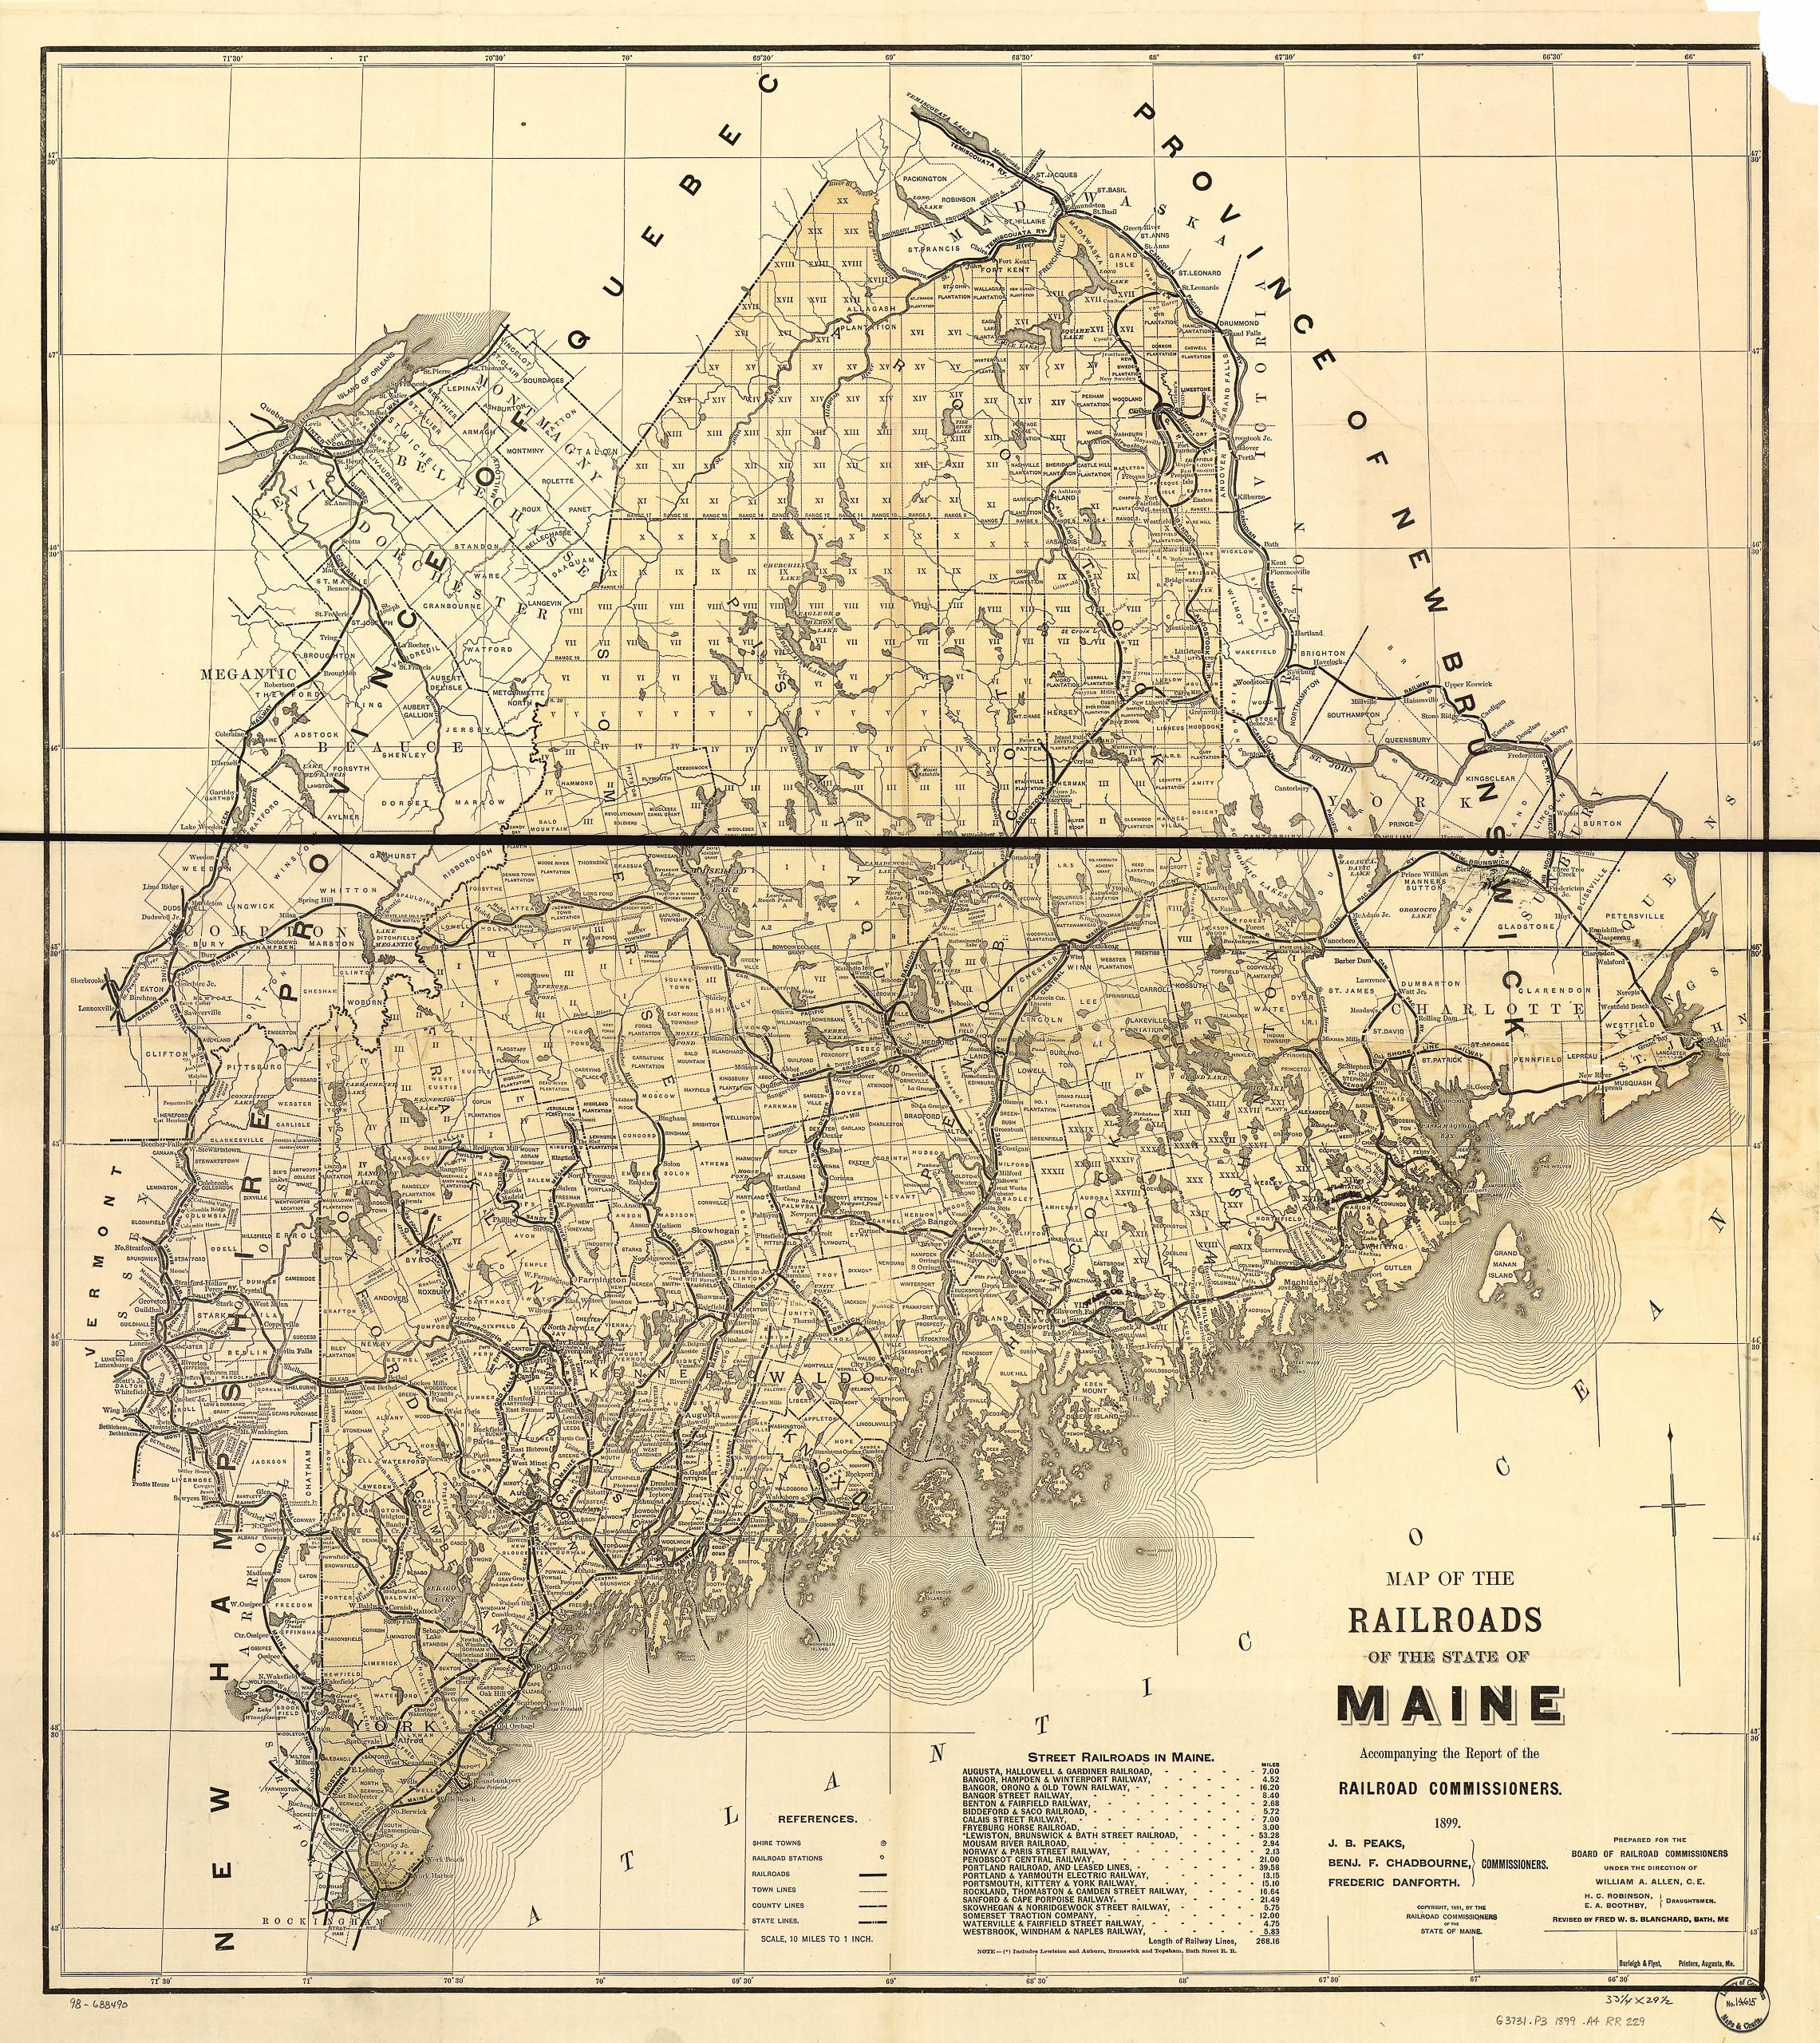 1899 Map of the Railroads of the State of Maine